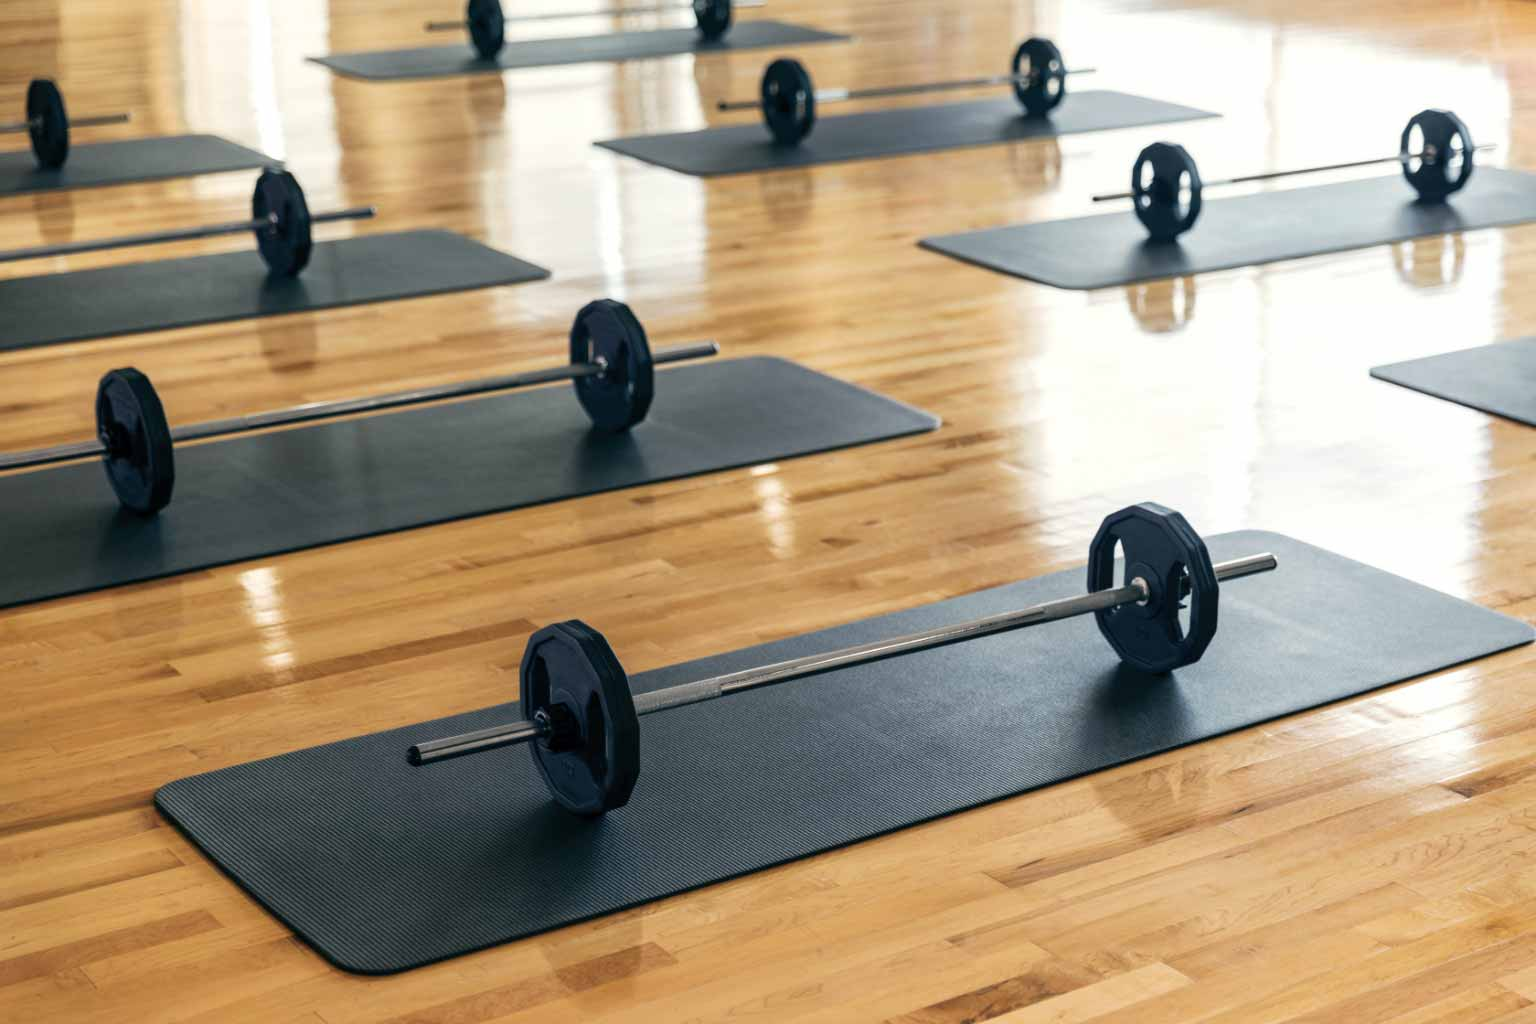 weights on mats in a studio